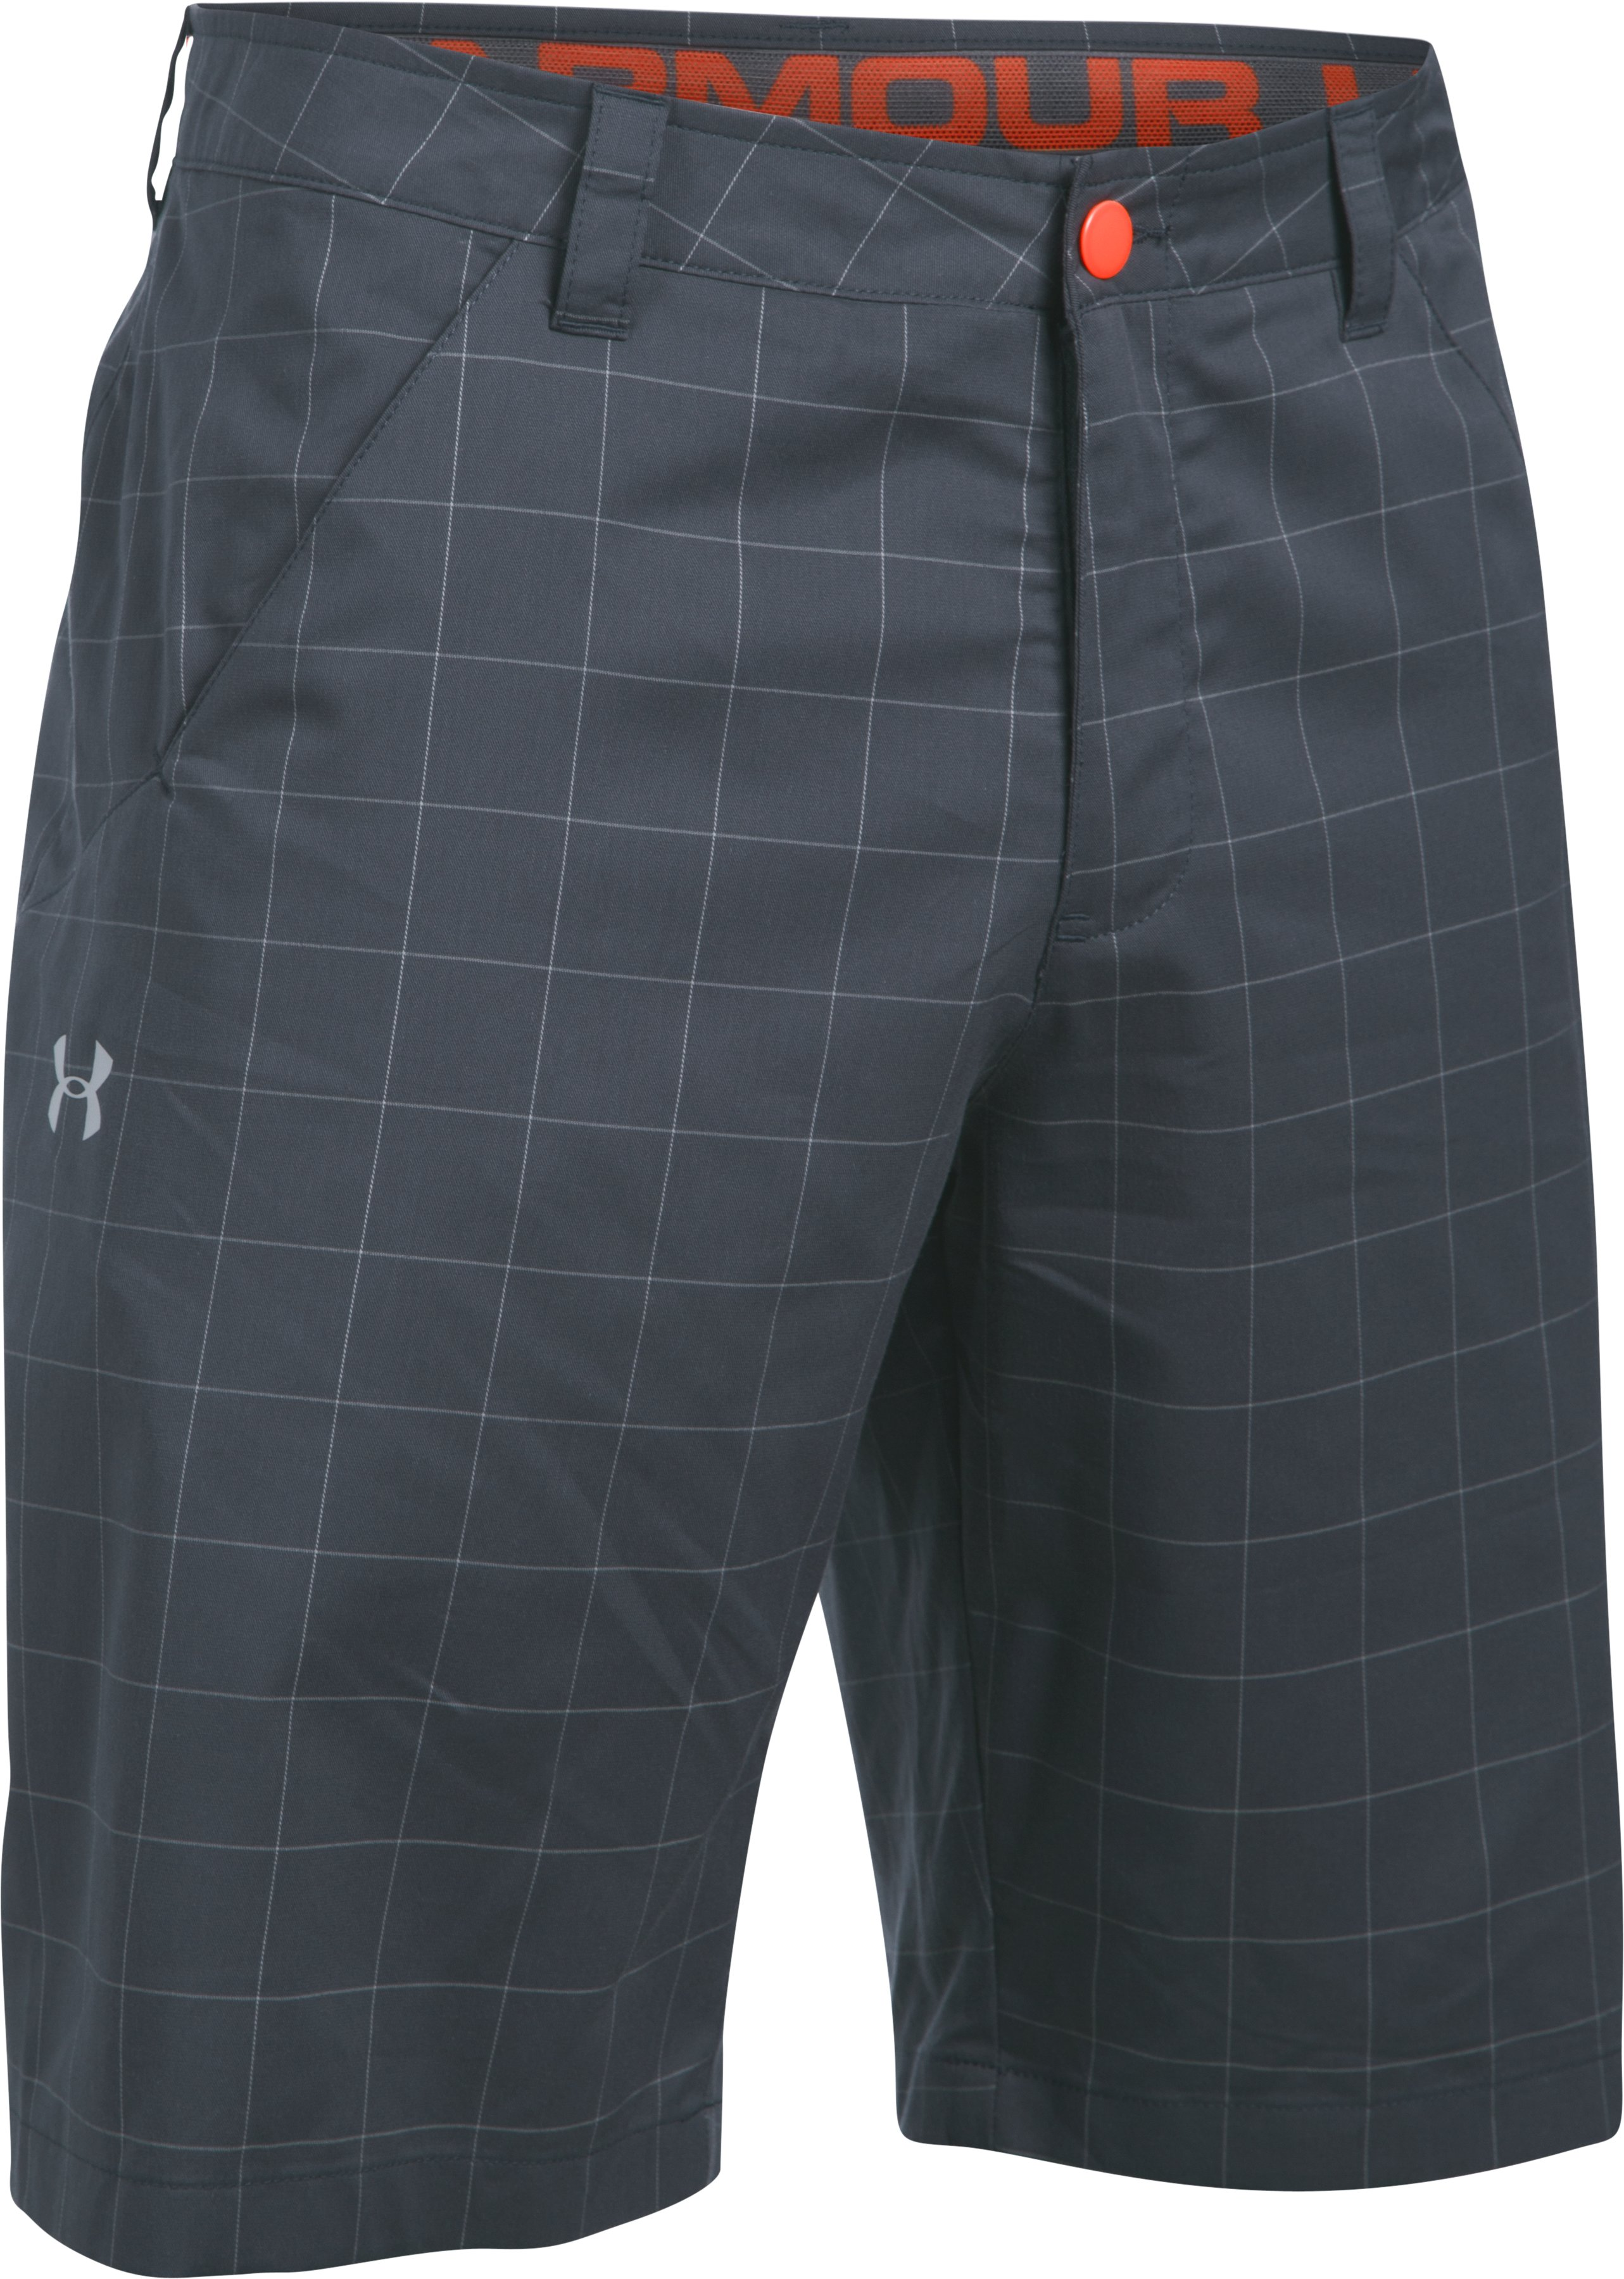 Men's UA Turf & Tide Amphibious Boardshorts, STEALTH GRAY, undefined